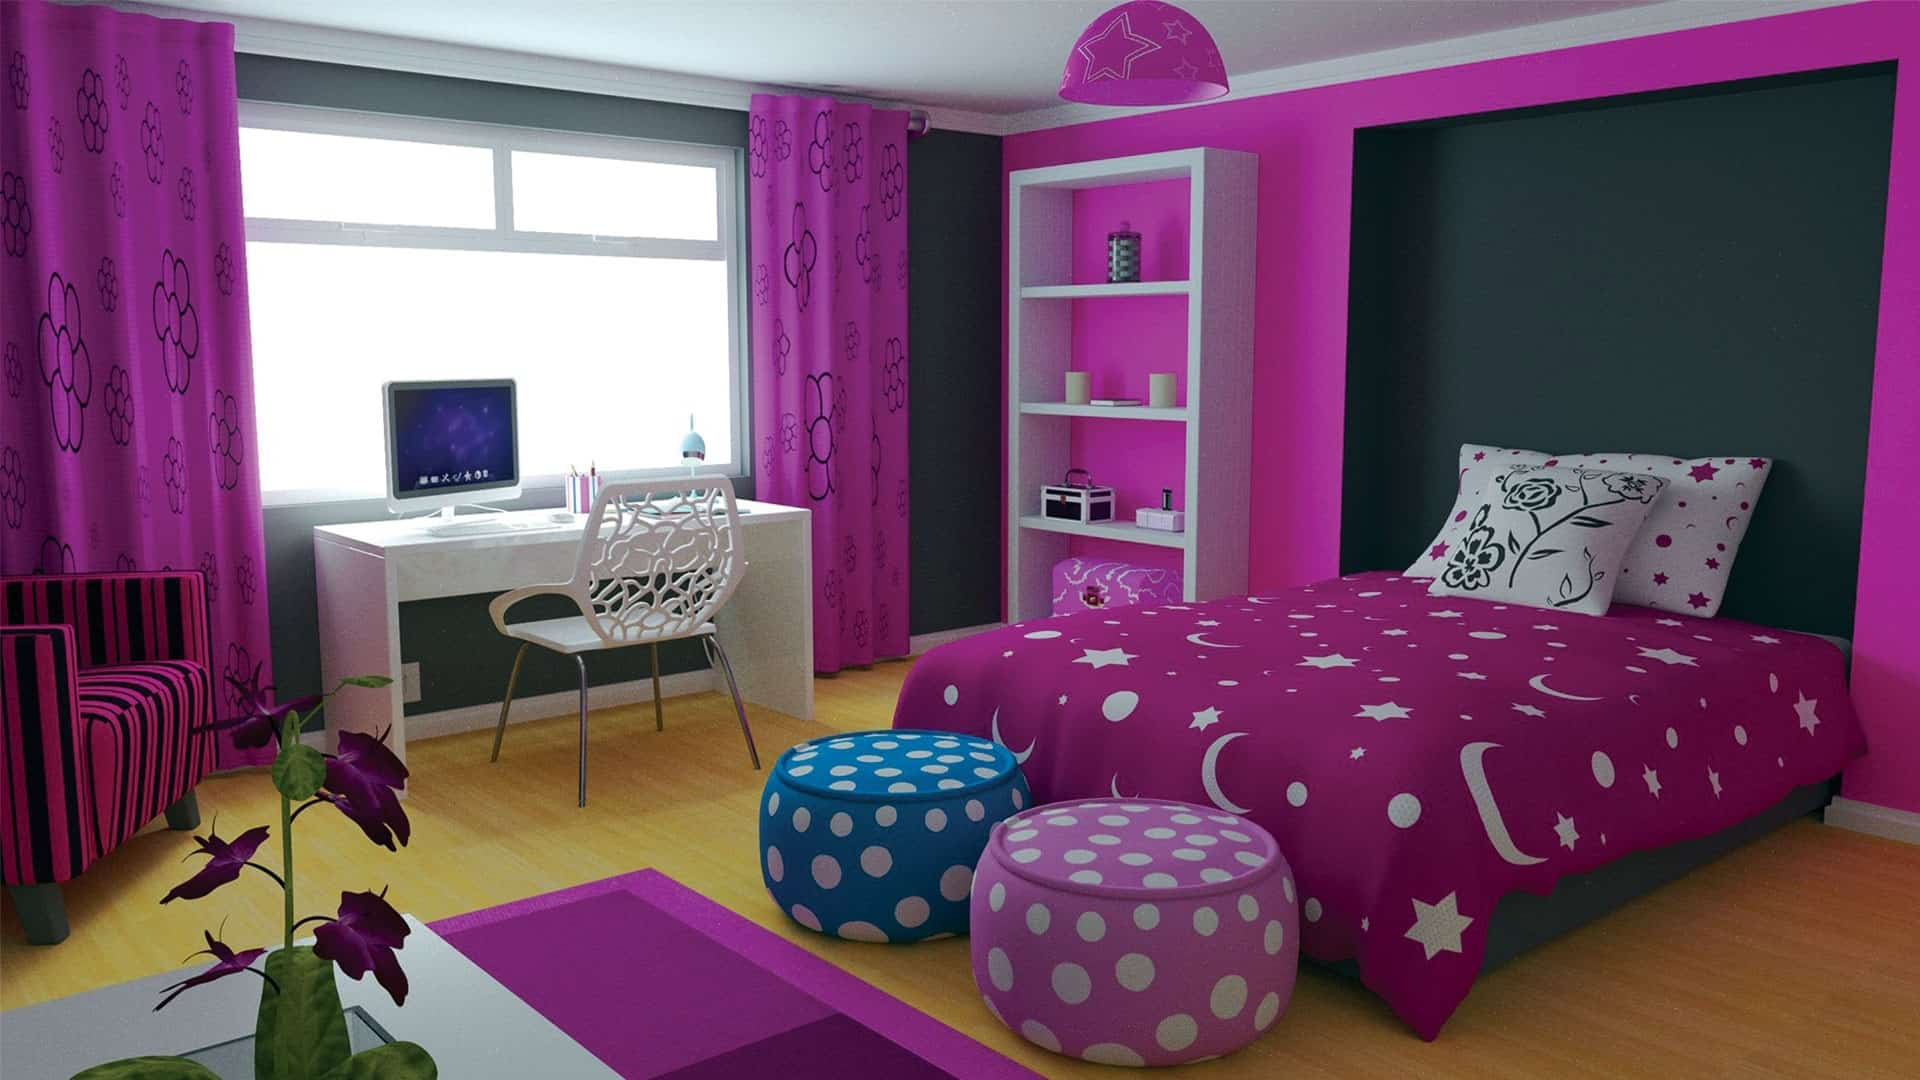 Home decor trends 2017 purple teen room - Purple room for girls ...